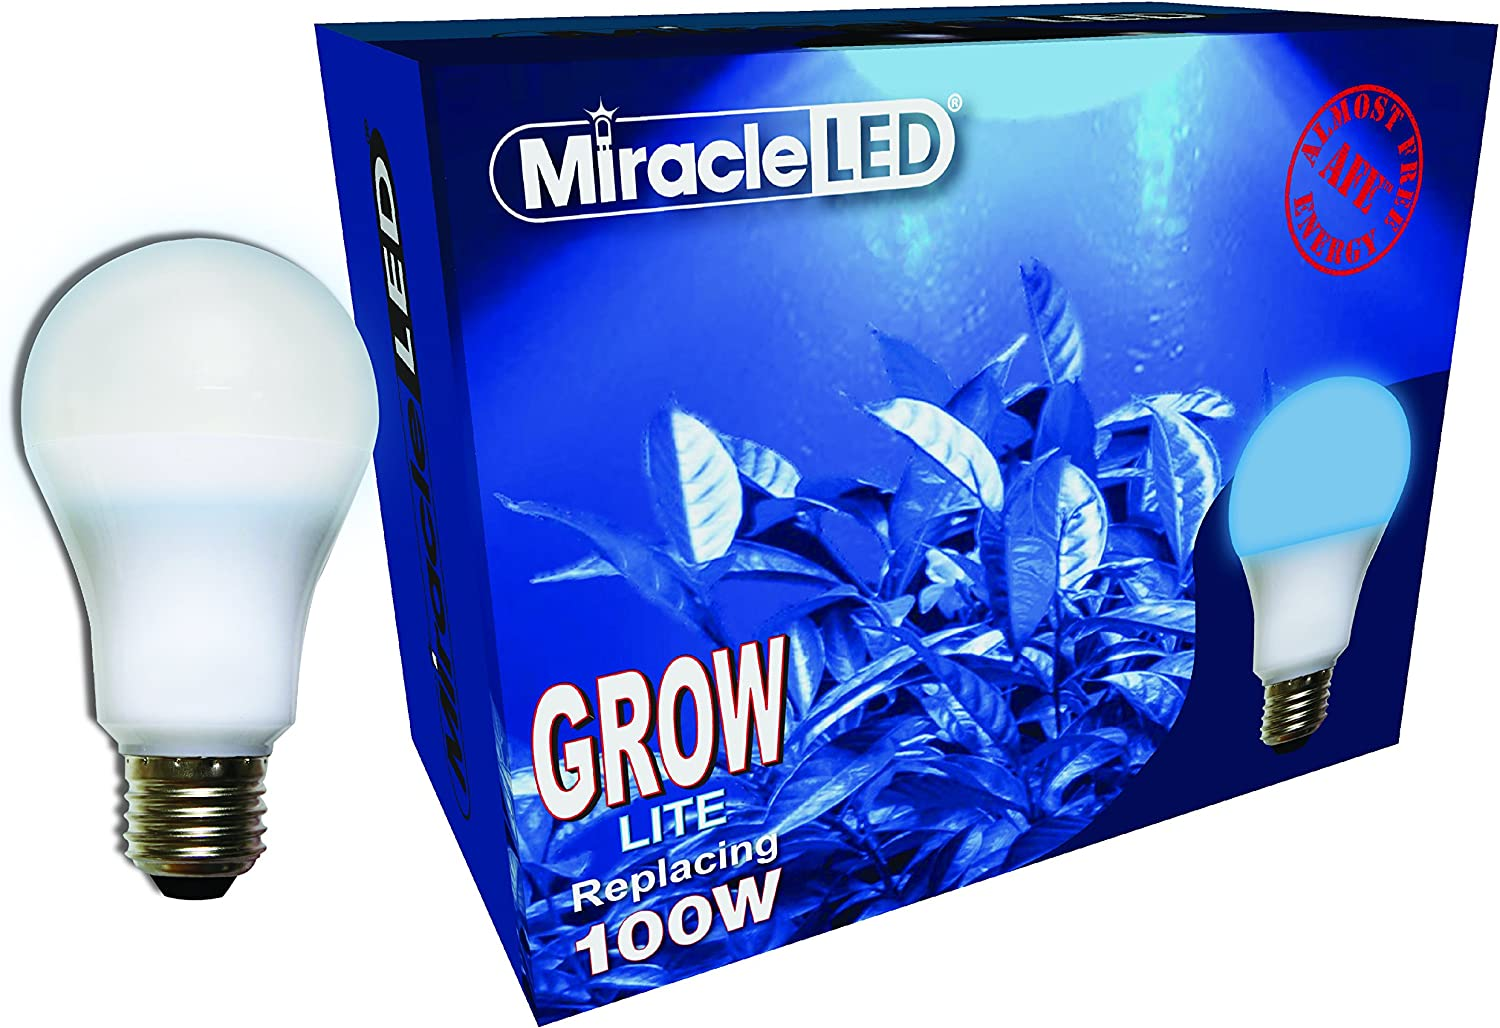 Miracle LED Almost Free Energy 100W Growth Starter Blue LED Grow Lite - Blue Light for Seed Starting and Strong Plant Stems in DIY Horticulture, Hydroponics, and Indoor Gardens (604291) Single Pack